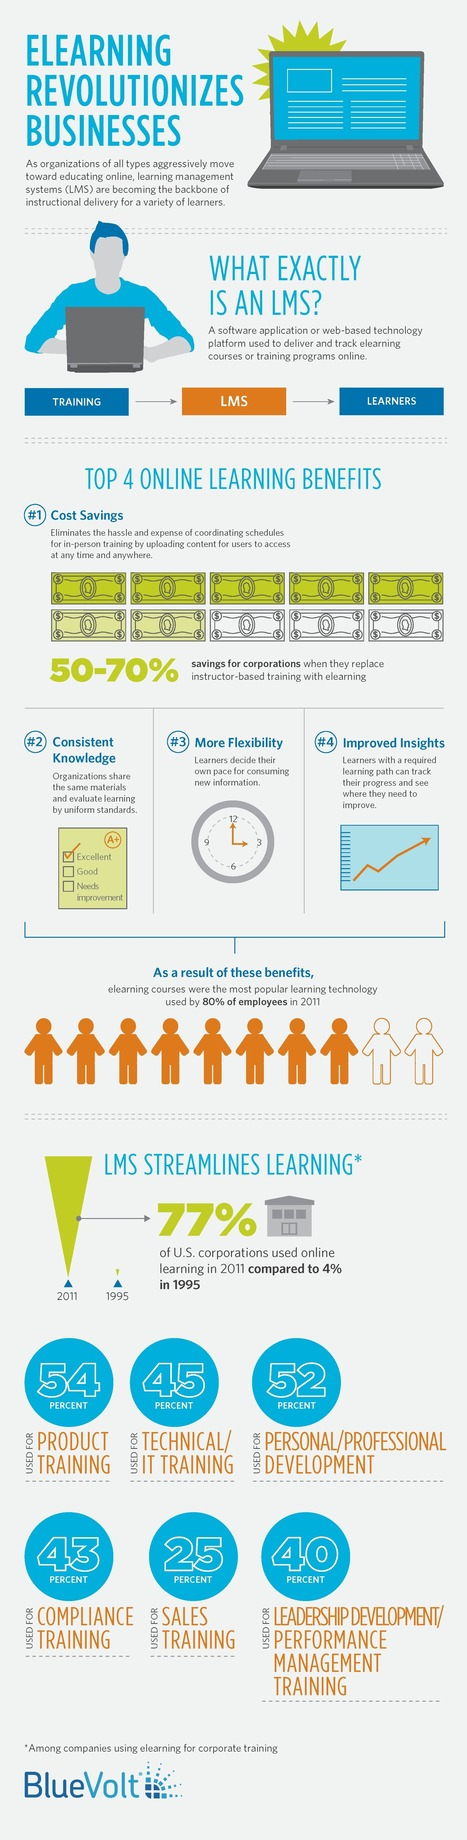 Top 4 LMS Benefits Infographic | e-Learning Infographics | Learning & Learning Technologies - Interest Piques | Scoop.it